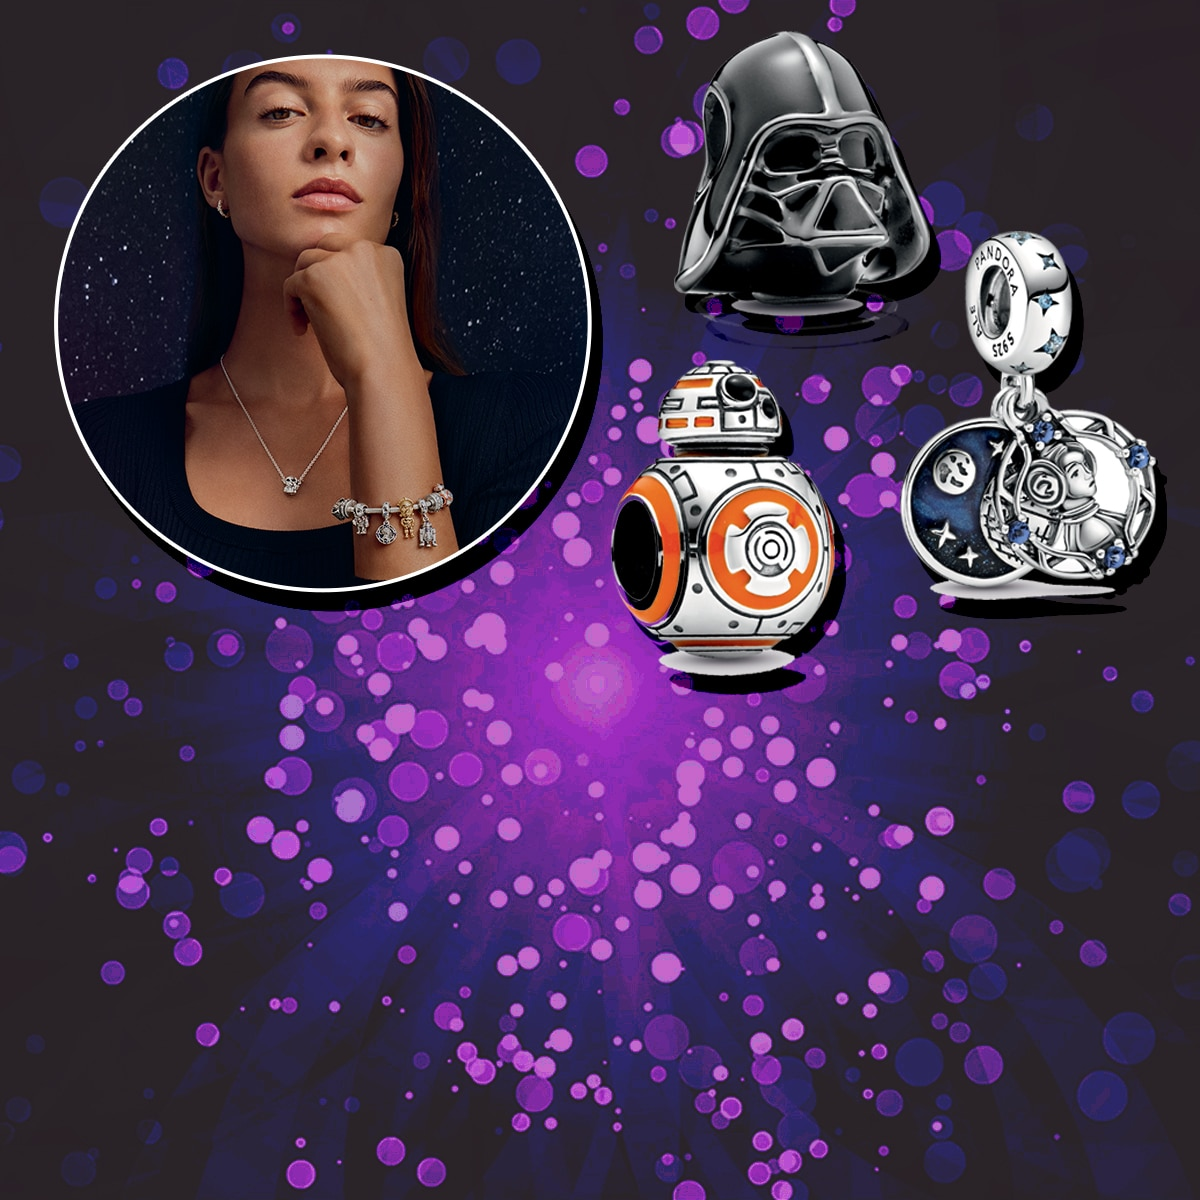 Embrace The Force In Style With the Star Wars x Pandora Collection - E!  Online